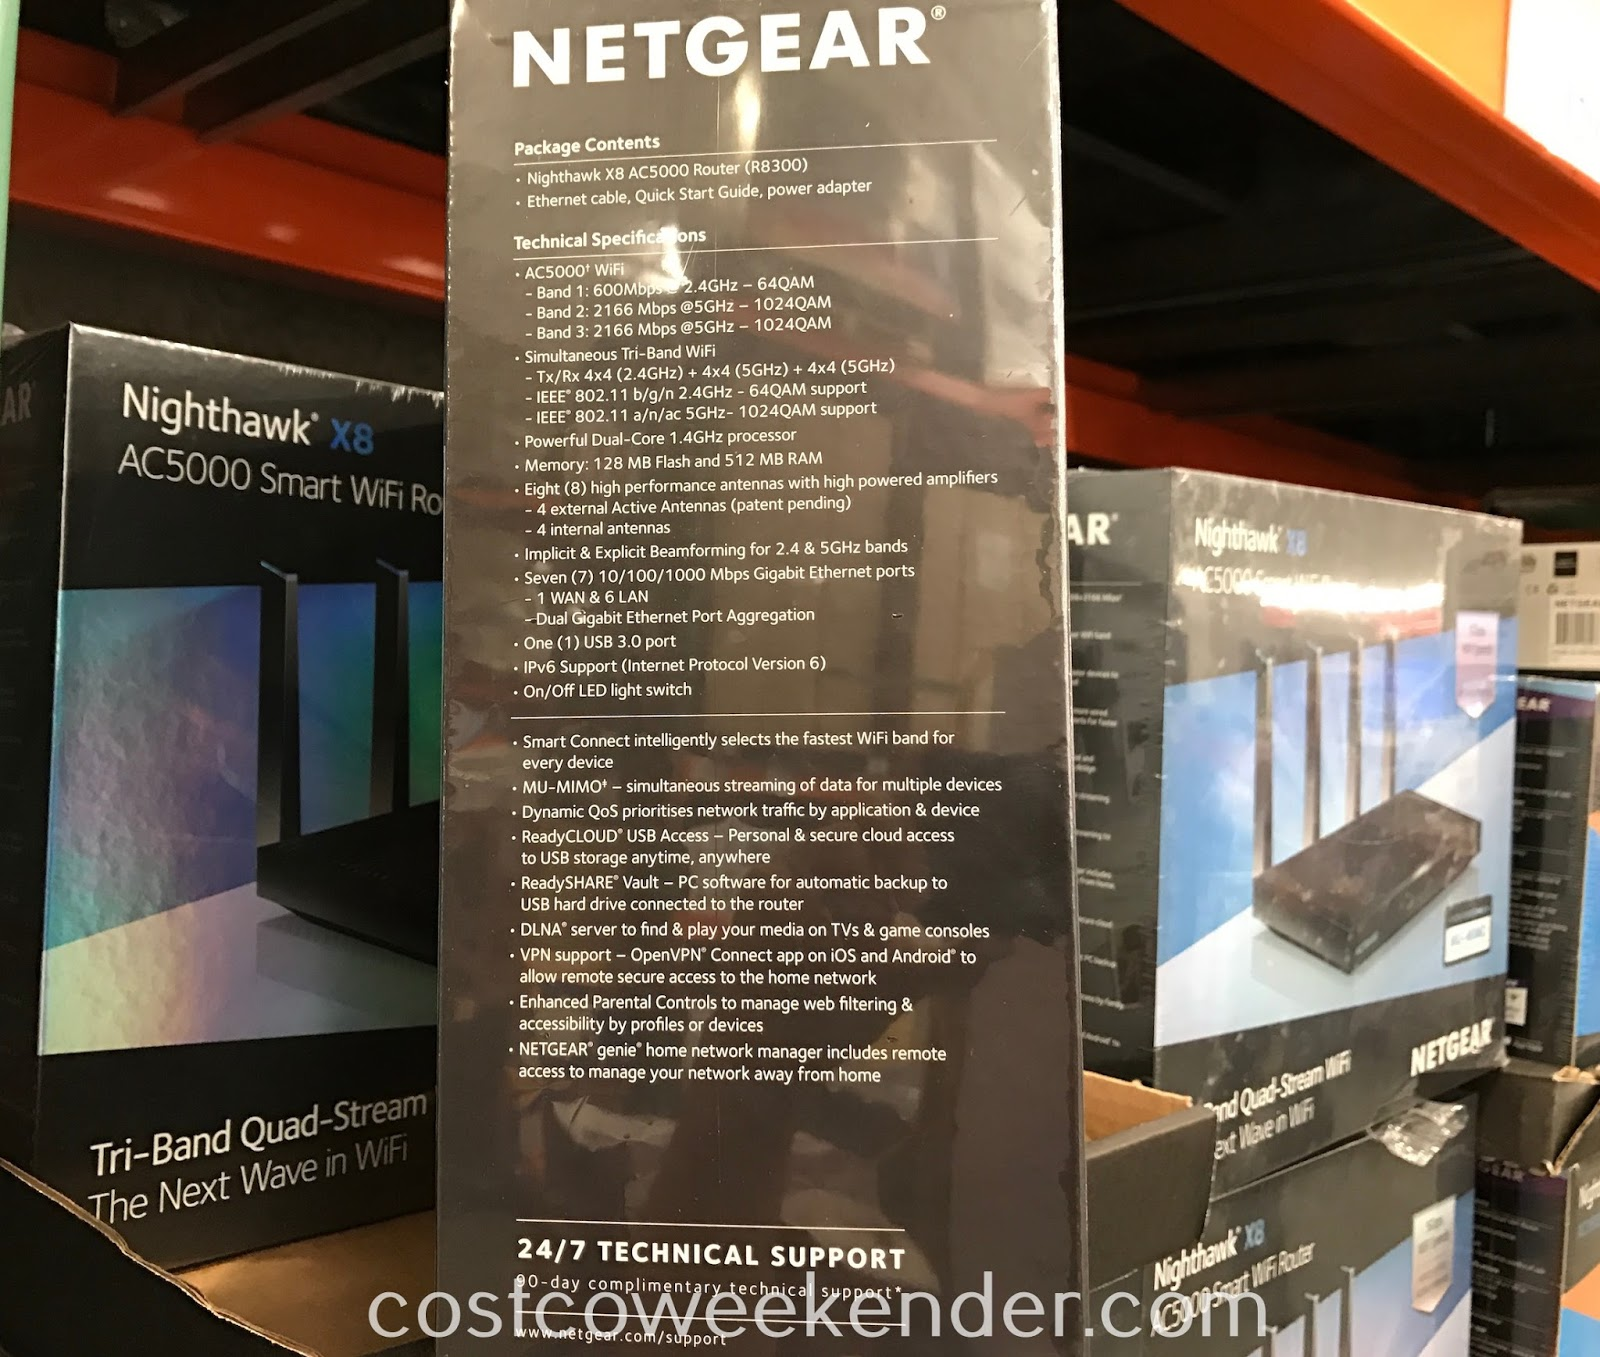 Netgear Nighthawk X8 AC5000 Smart WiFi Router (R8300): great for any home network